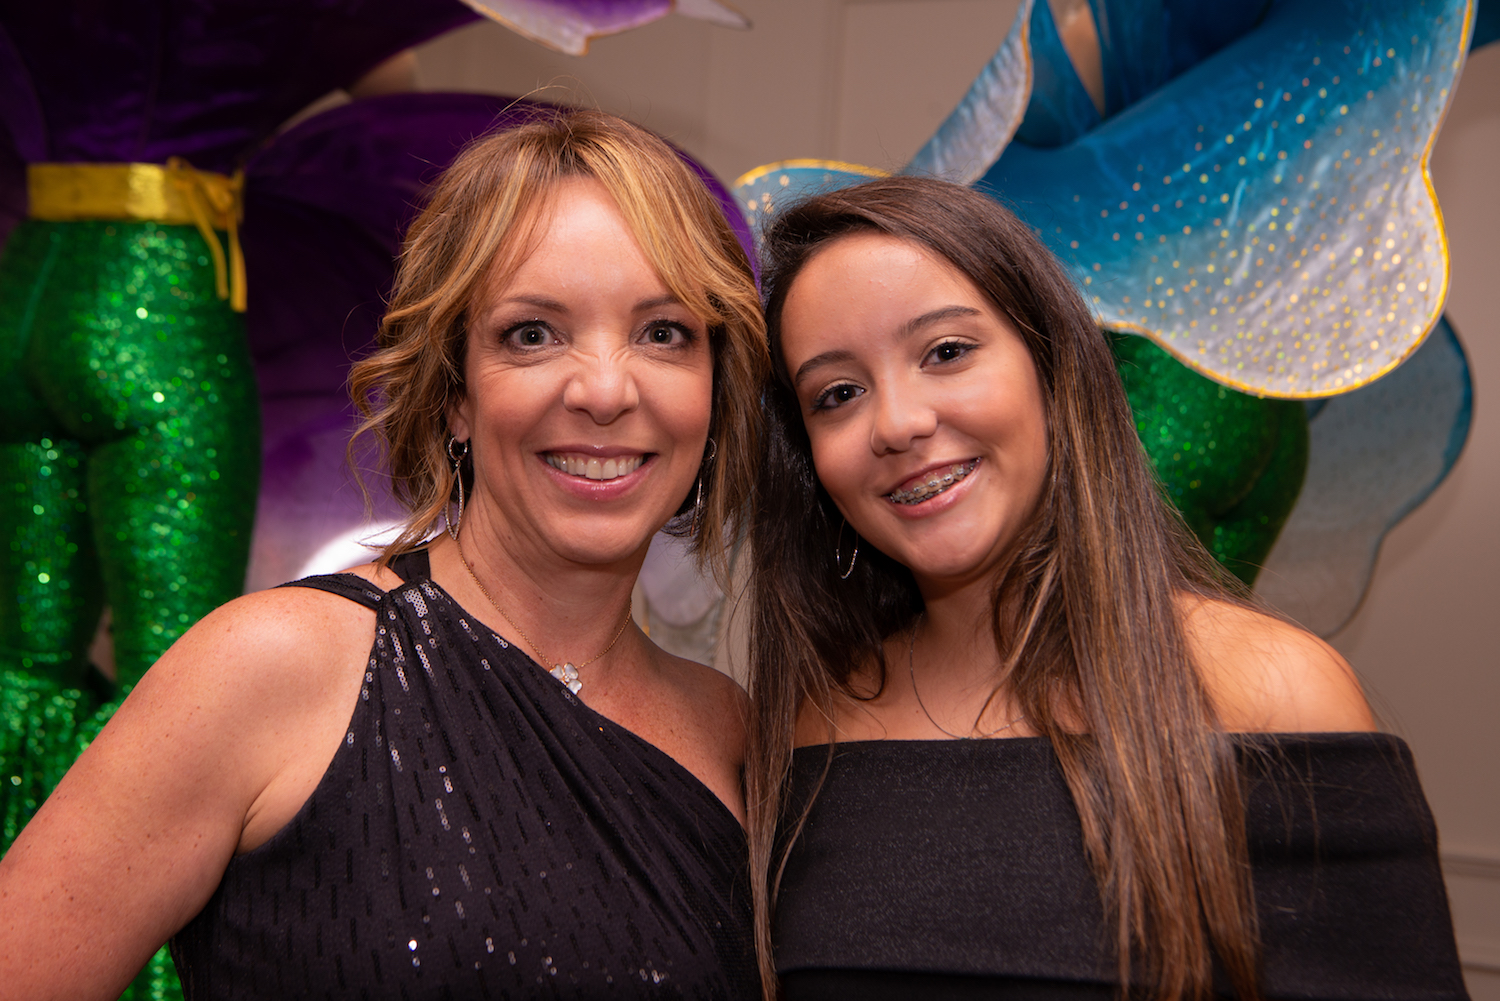 Simoni & Nathalia Morato BrazilFoundation XVI Gala New York Celebrating the Amazon Plaza